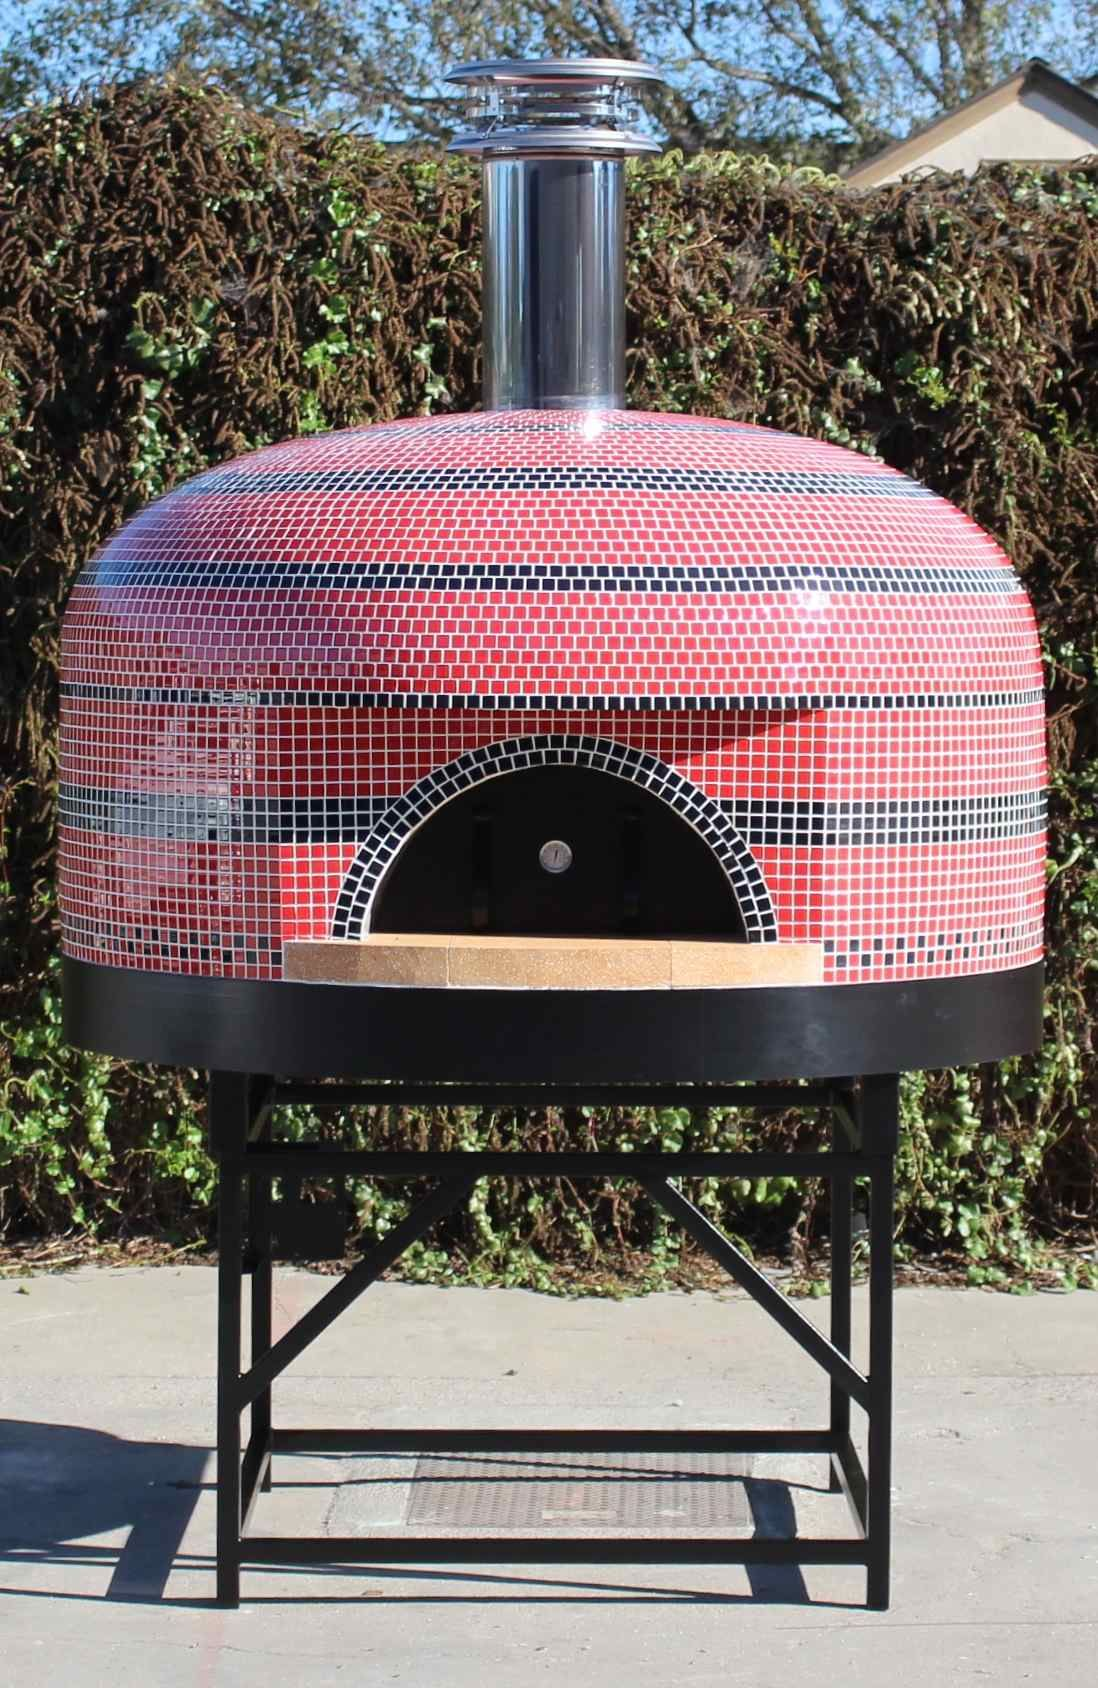 Portable wood fired pizza oven for sale - This Commercial Gas Pizza Oven Ensures Efficient Cooking And Comes Fully Assembled Purchase Yours